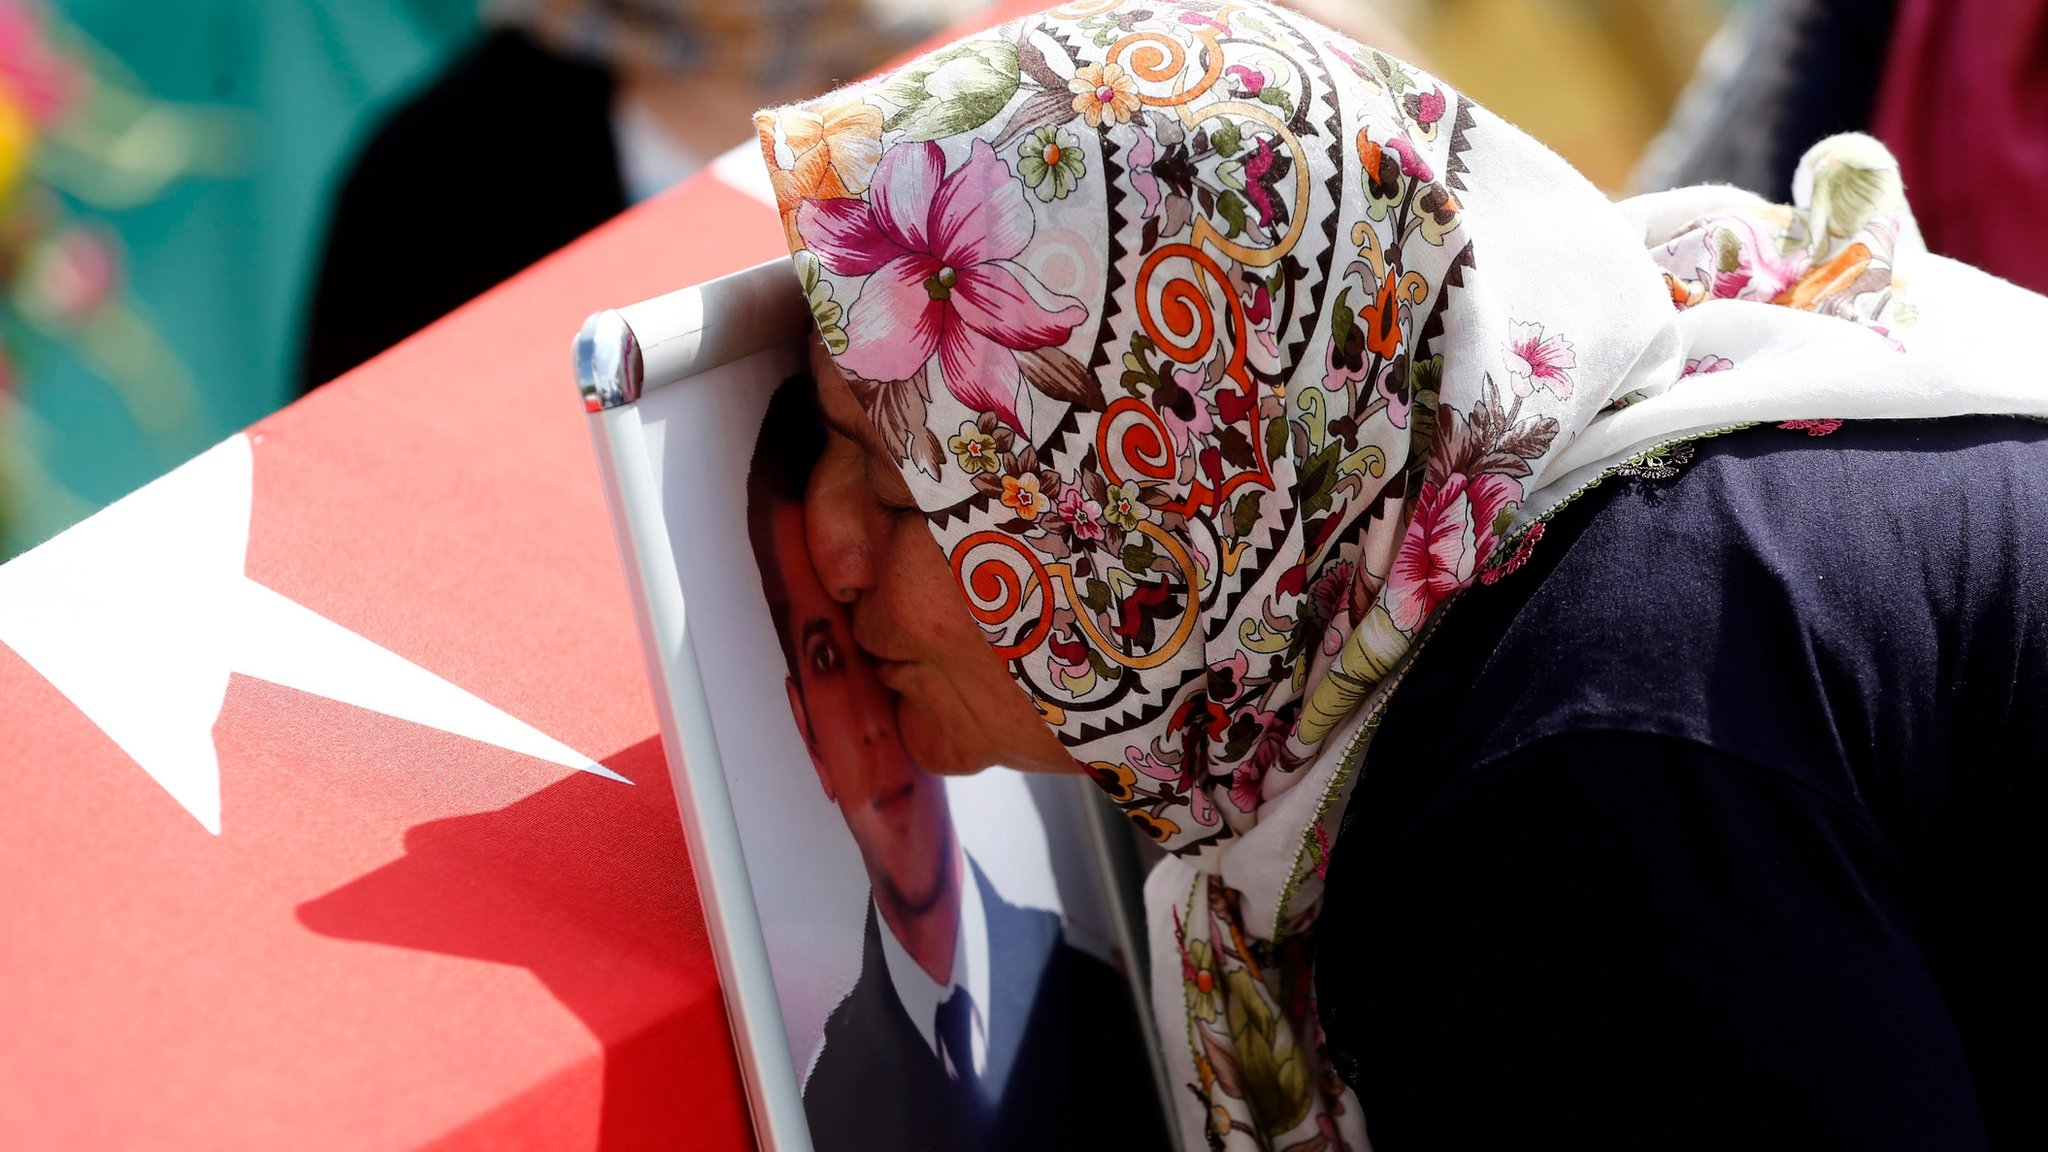 Istanbul Ataturk airport attack: Deaths rise to 42 as Turkey mourns